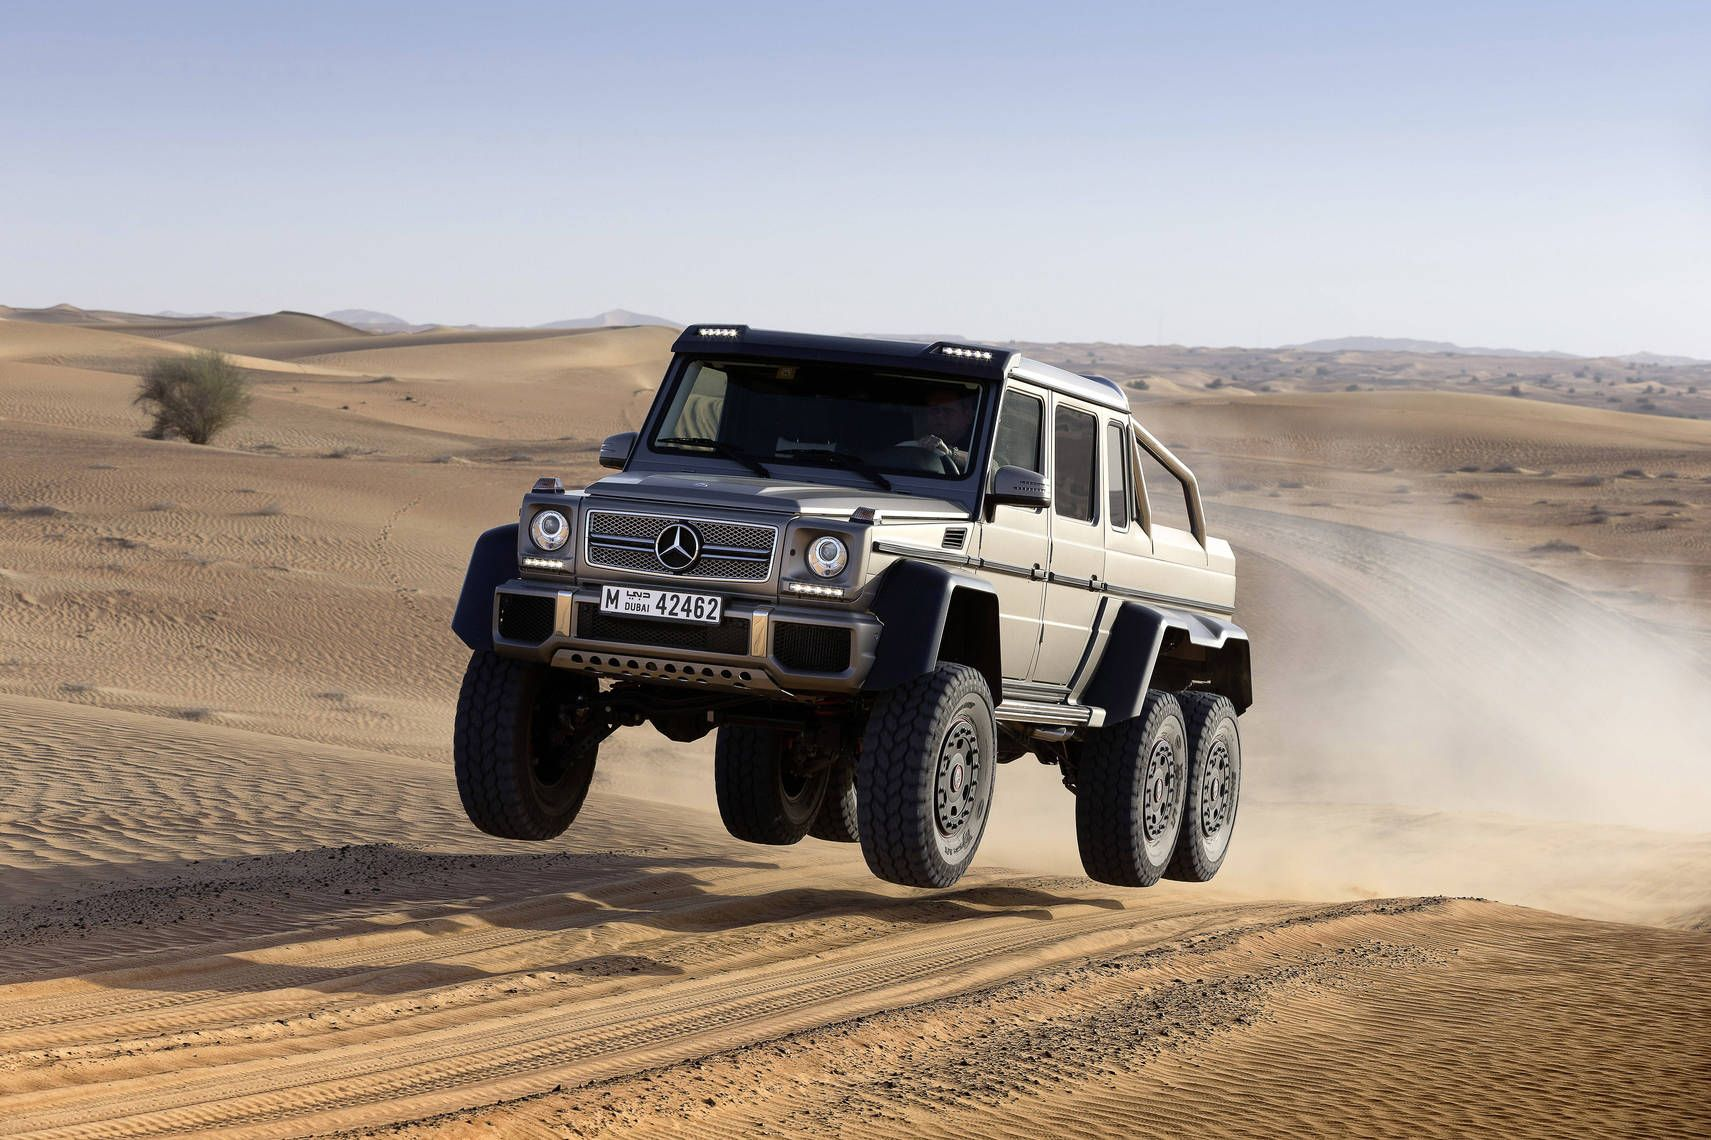 14 best off road vehicles of all time if you are an off road vehicle enthusiast